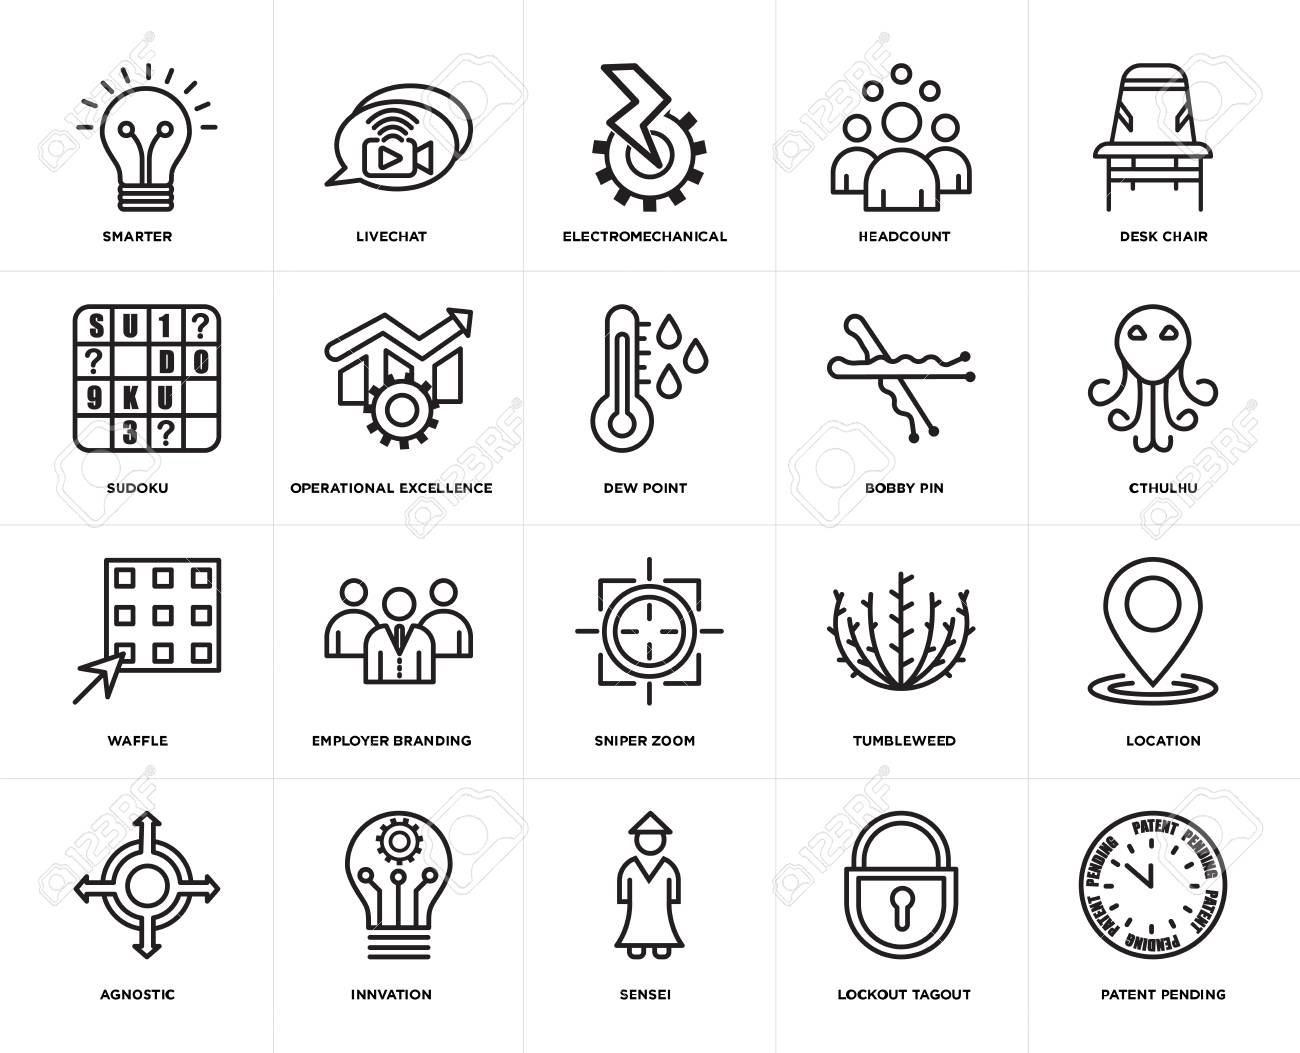 Set Of 20 Simple Editable Icons Such As Patent Pending Cthulhu Royalty Free Cliparts Vectors And Stock Illustration Image 106808792 Find stockbilleder af cthulhu transparent icon cthulhu symbol design i hd og millionvis af andre cthulhu symbol design from fairy tale collection. set of 20 simple editable icons such as patent pending cthulhu